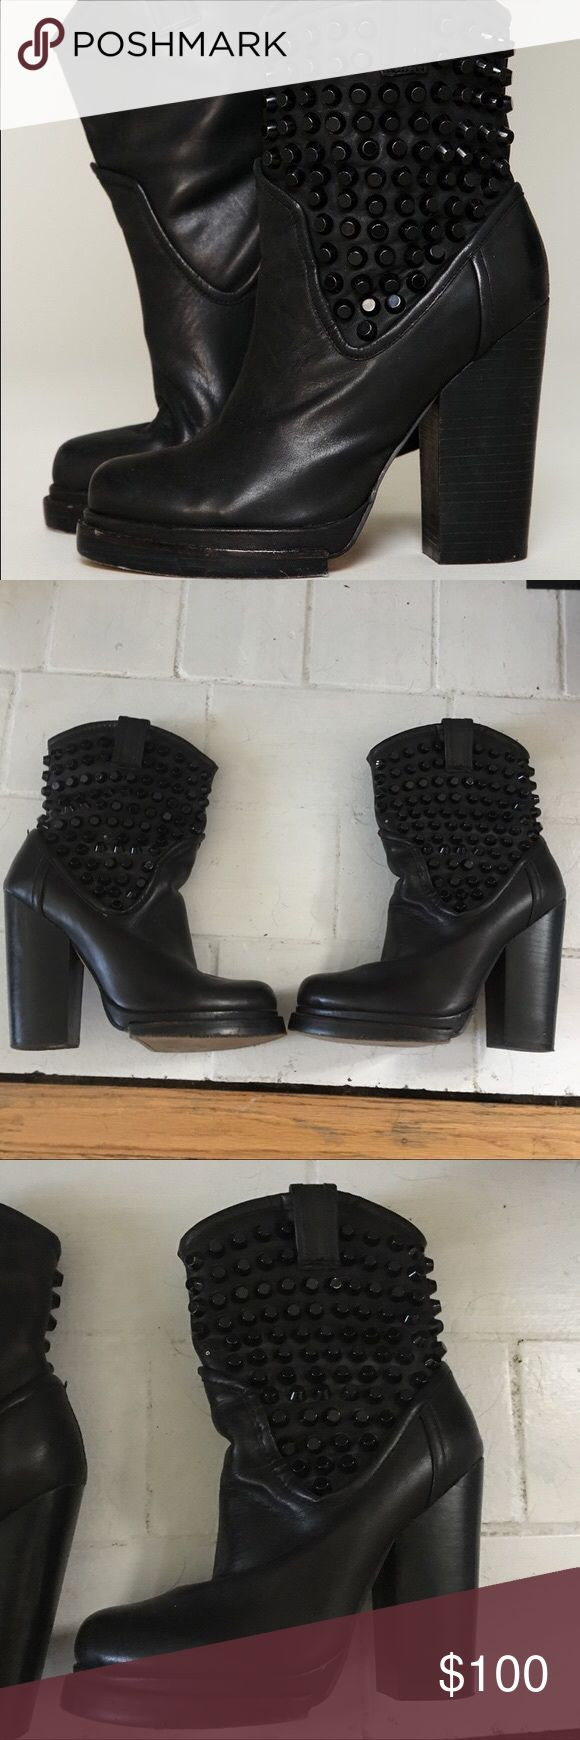 Jeffrey Campbell Free People Chelsea stud boots Rare Chelsea stud boots previously sold at Free People, heel height roughly 4.5 inches, comes pre-distressed/has a worn in look, super cute with a mini skirt or jeans!! As seen on Ashley Tisdale Jeffrey Campbell Shoes